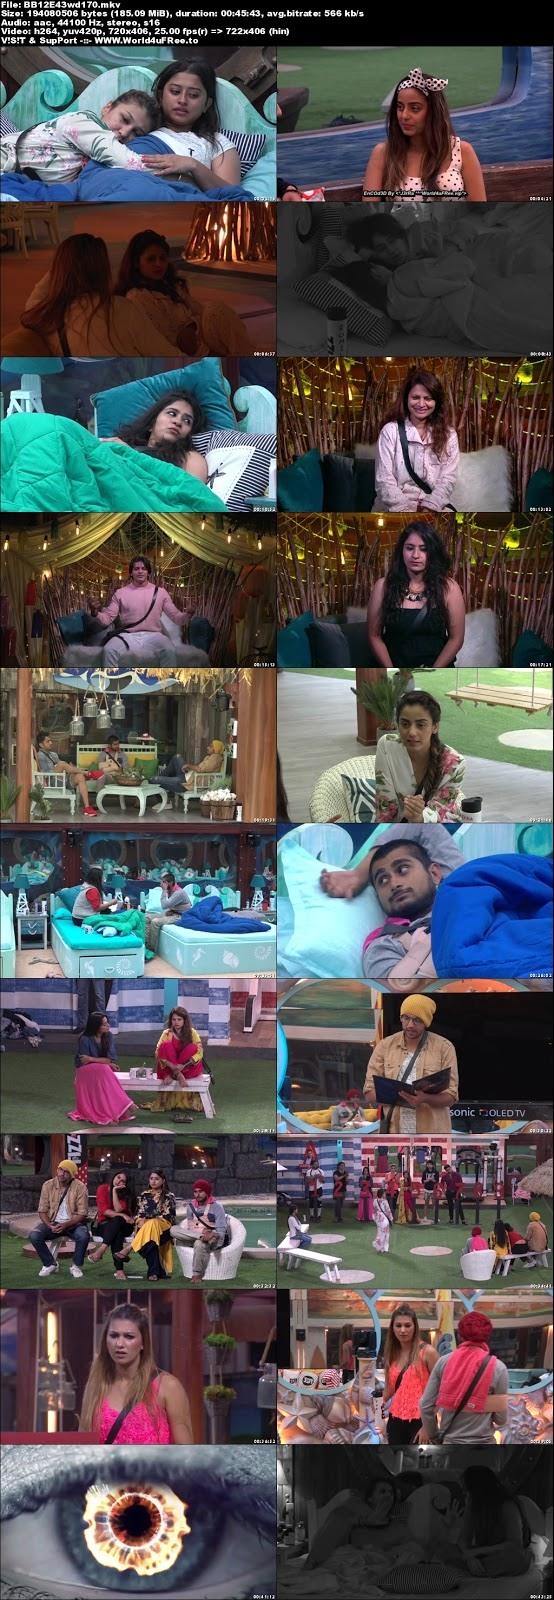 Bigg Boss 12 Episode 43 29 October 2018 WEBRip 480p 170Mb x264 world4ufree.fun tv show Episode 40 26 October 2018 world4ufree.fun 200mb 250mb 300mb compressed small size free download or watch online at world4ufree.fun